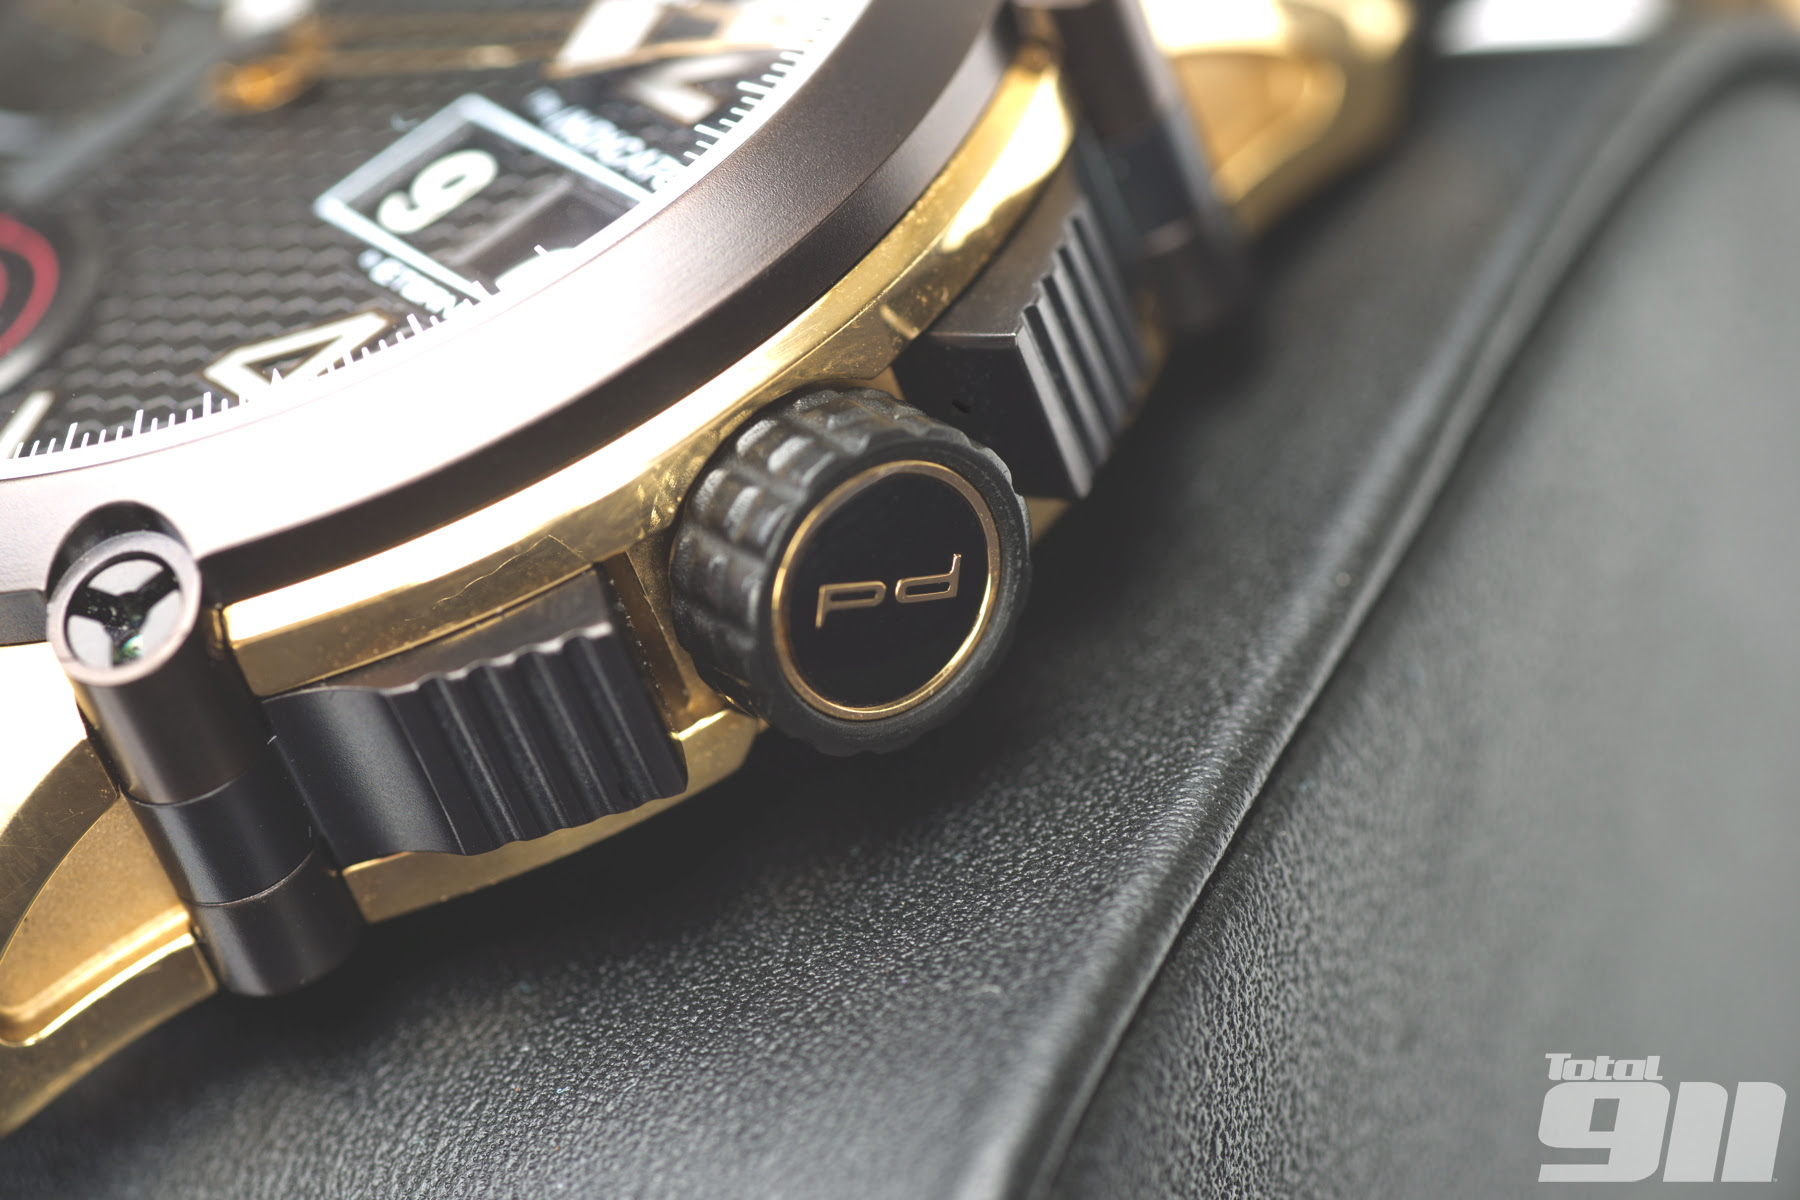 The Porsche Design Watch More Expensive Than A 991 Turbo S Total 911